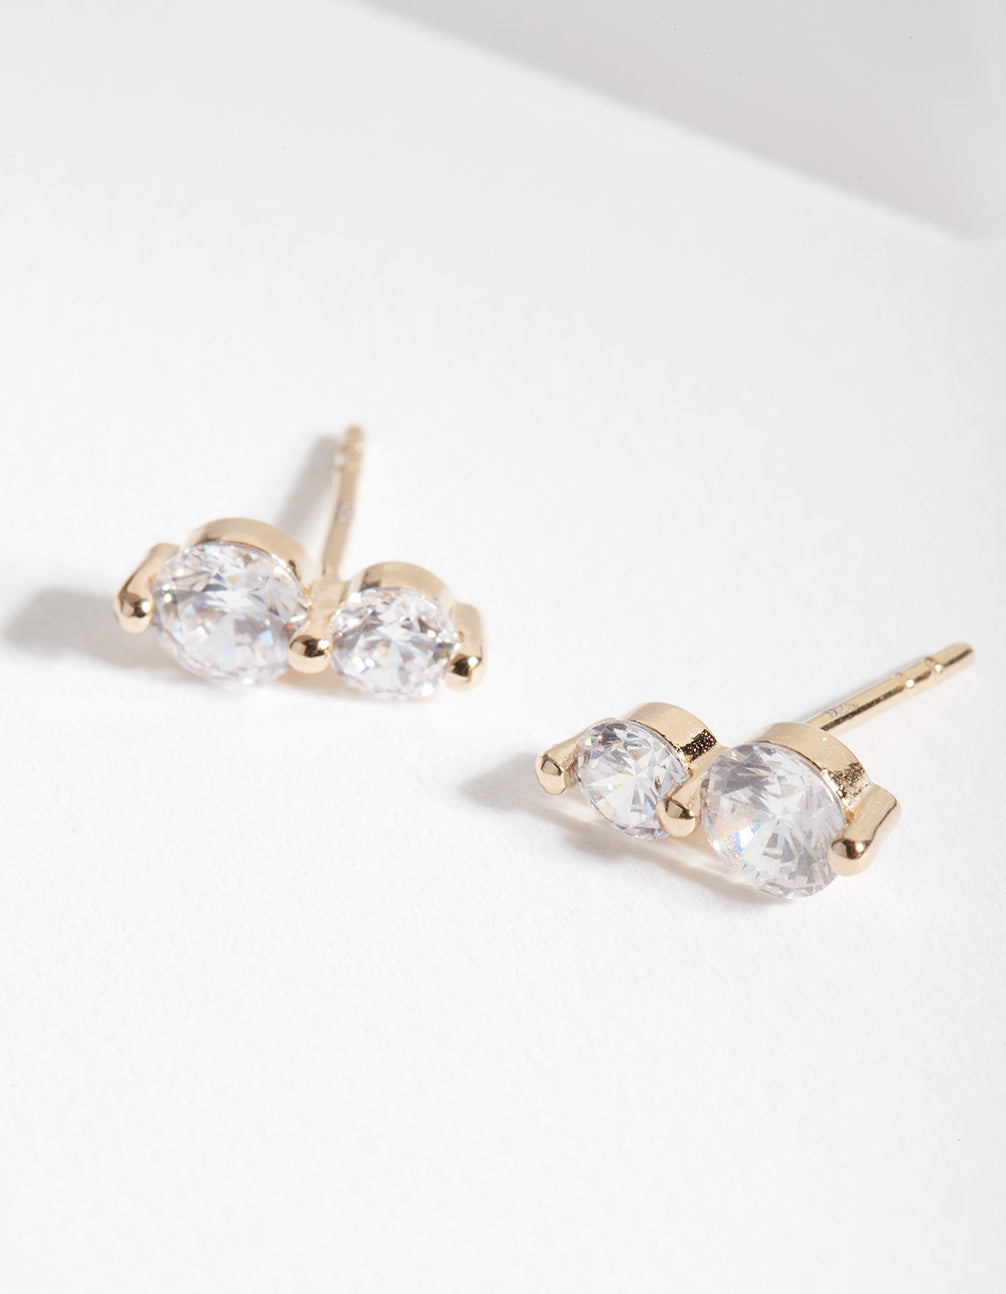 Gold Plated Sterling Silver Double Crystal Stud Earrings